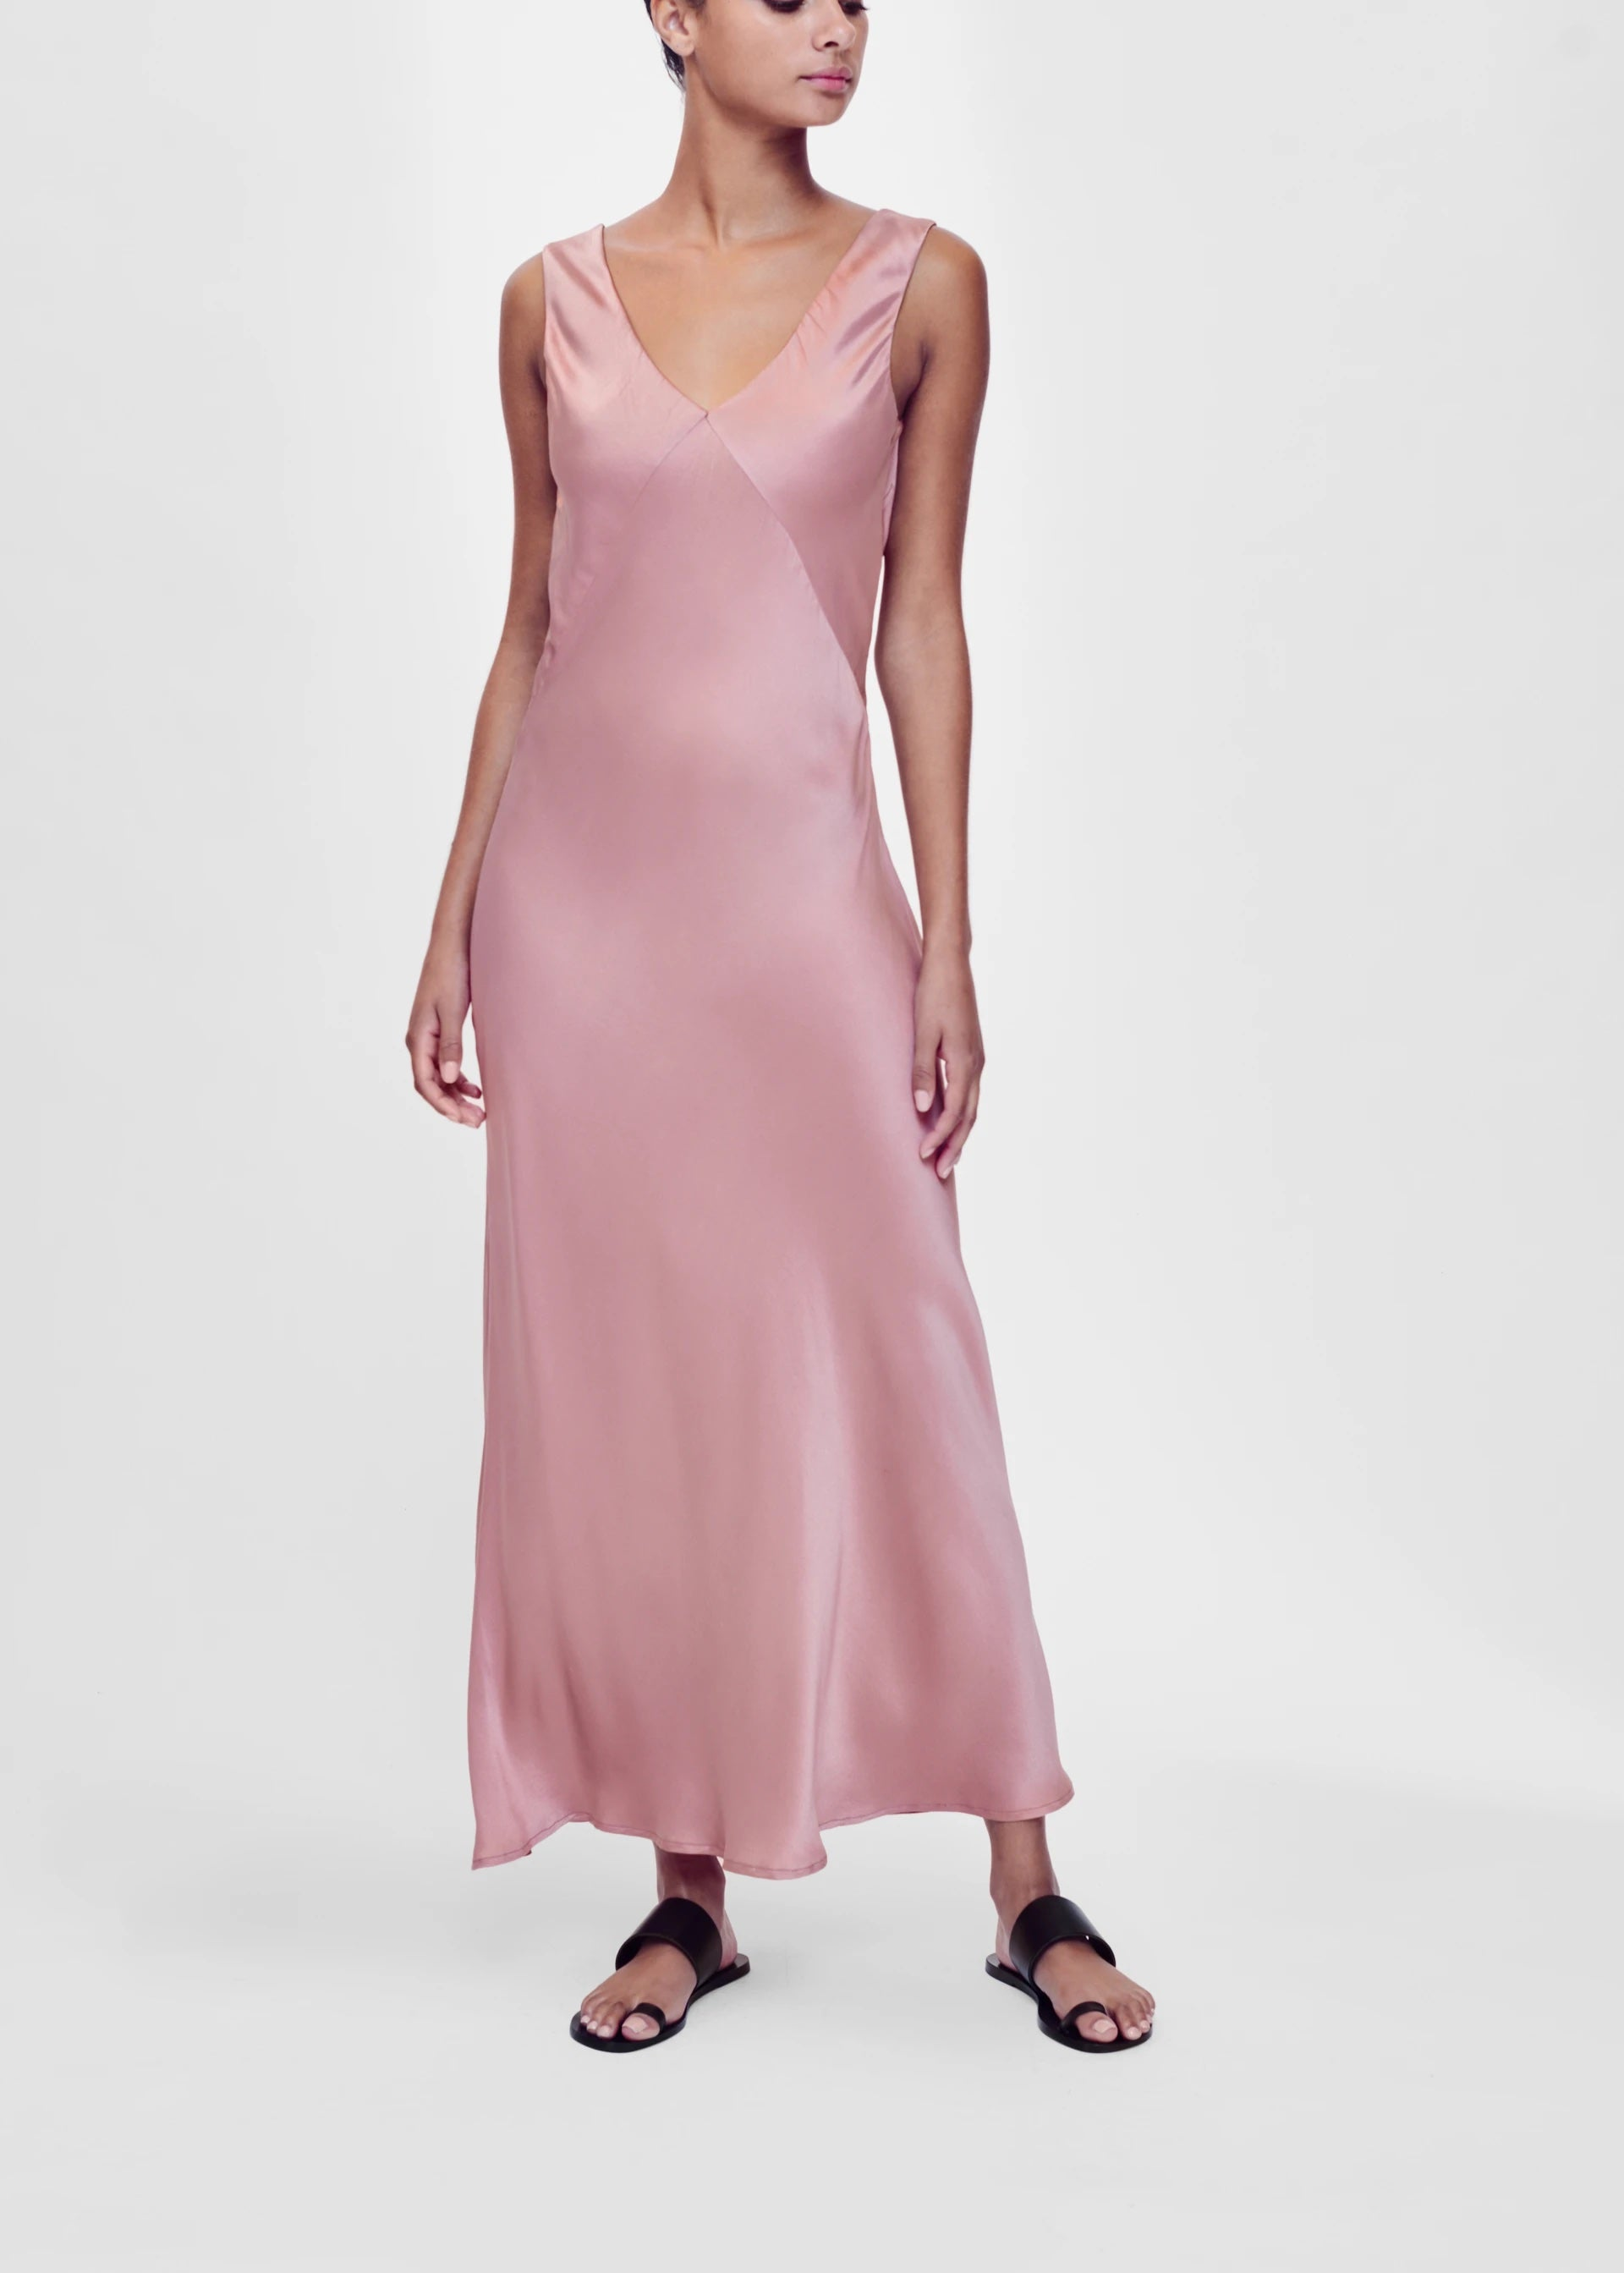 ASCENO BORDEAUX DUSTY ROSE SILK SLIP DRESS